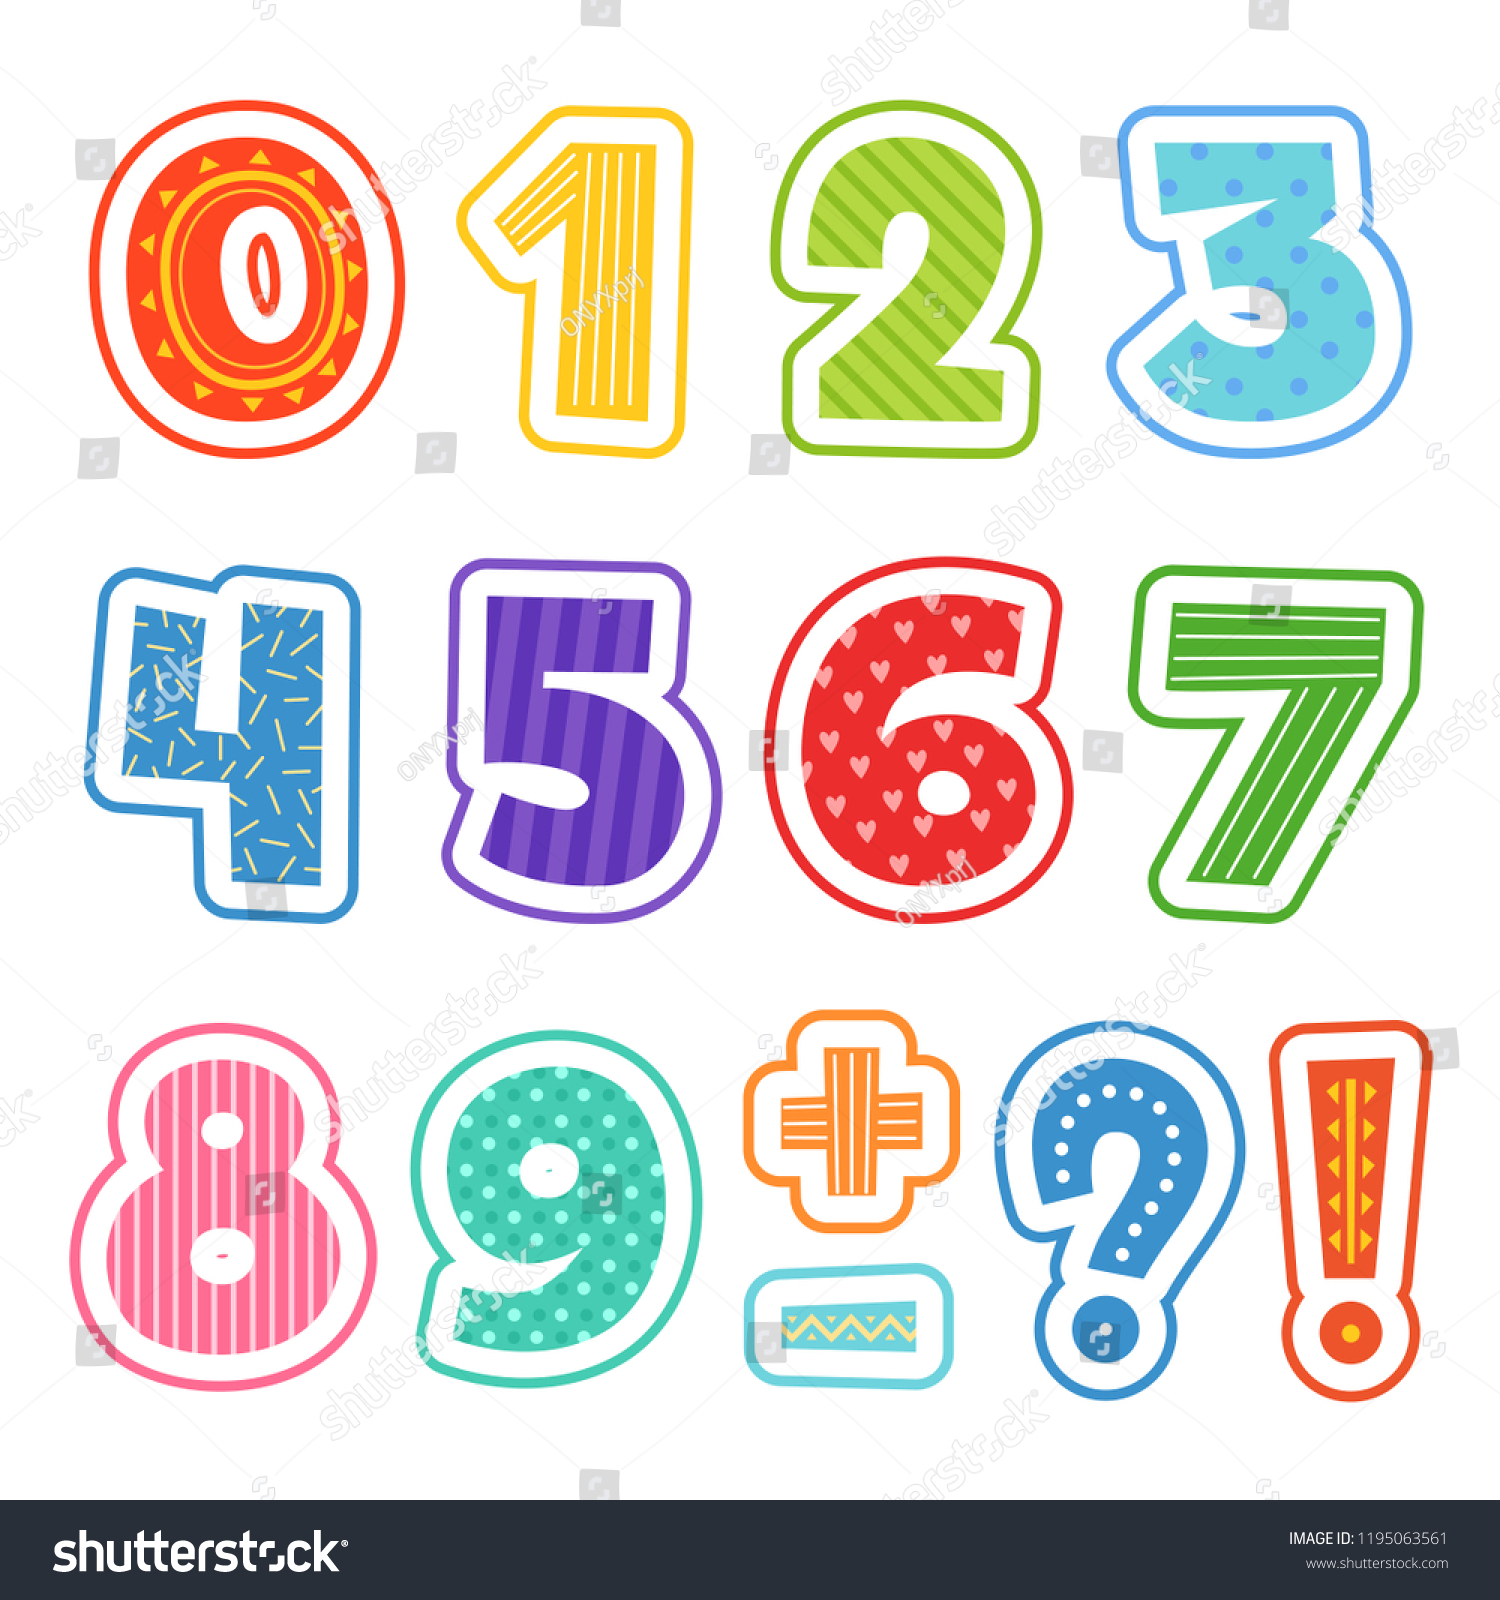 cartoon numbers colored fun alphabet school stock vector (royalty